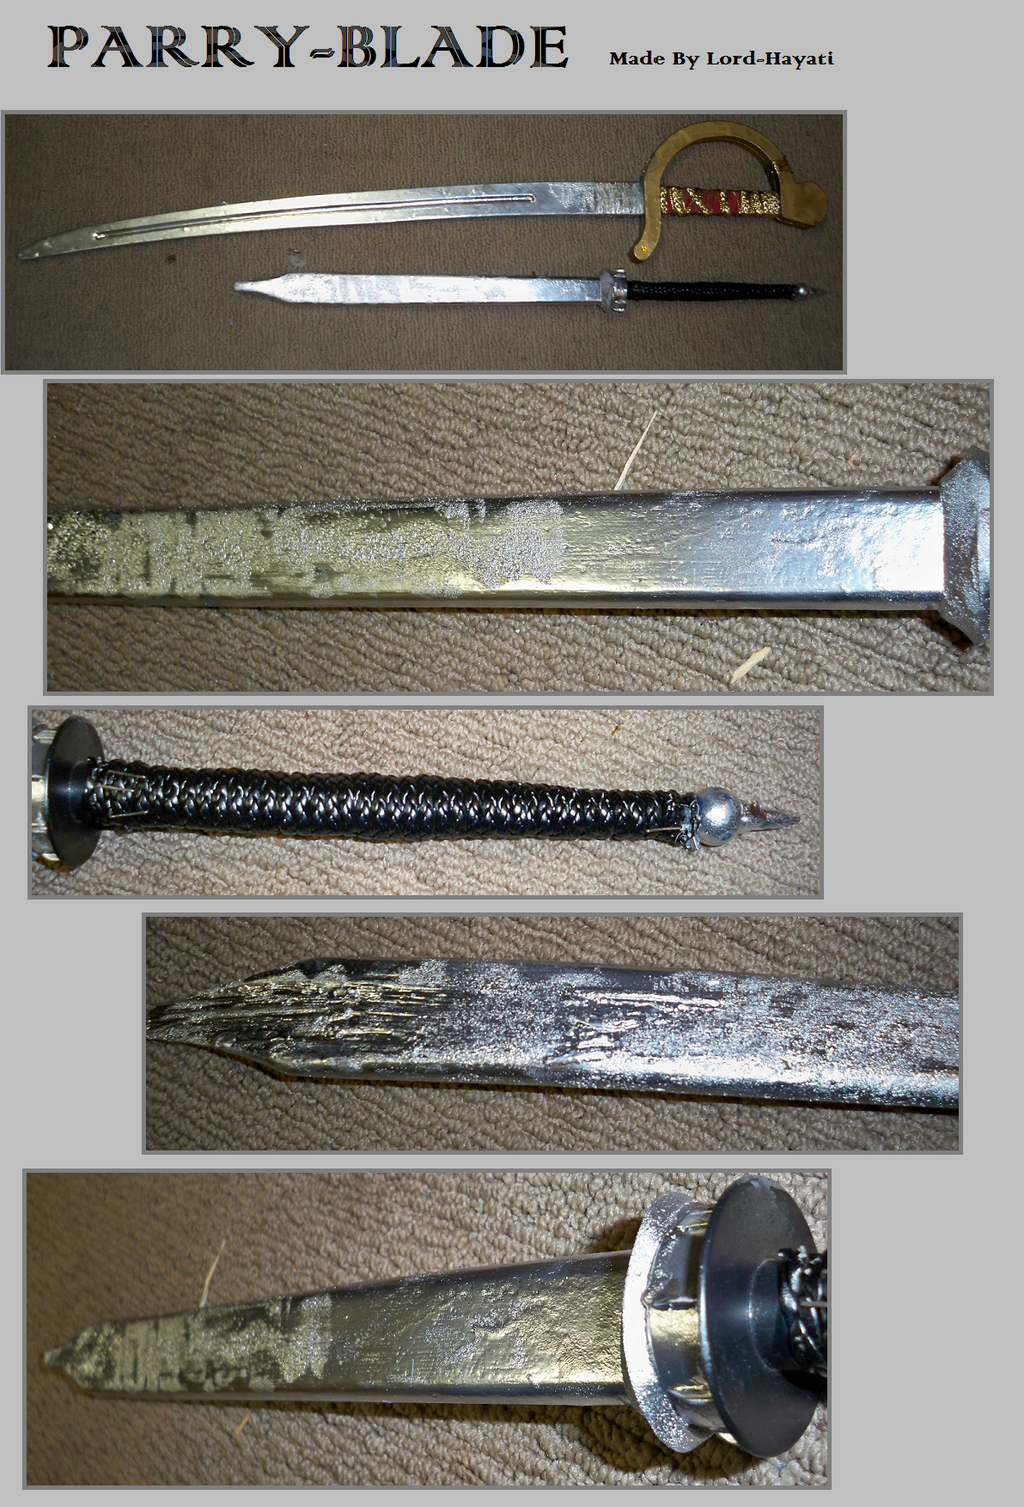 Parrying Blade -Homemade by Lord-Hayati